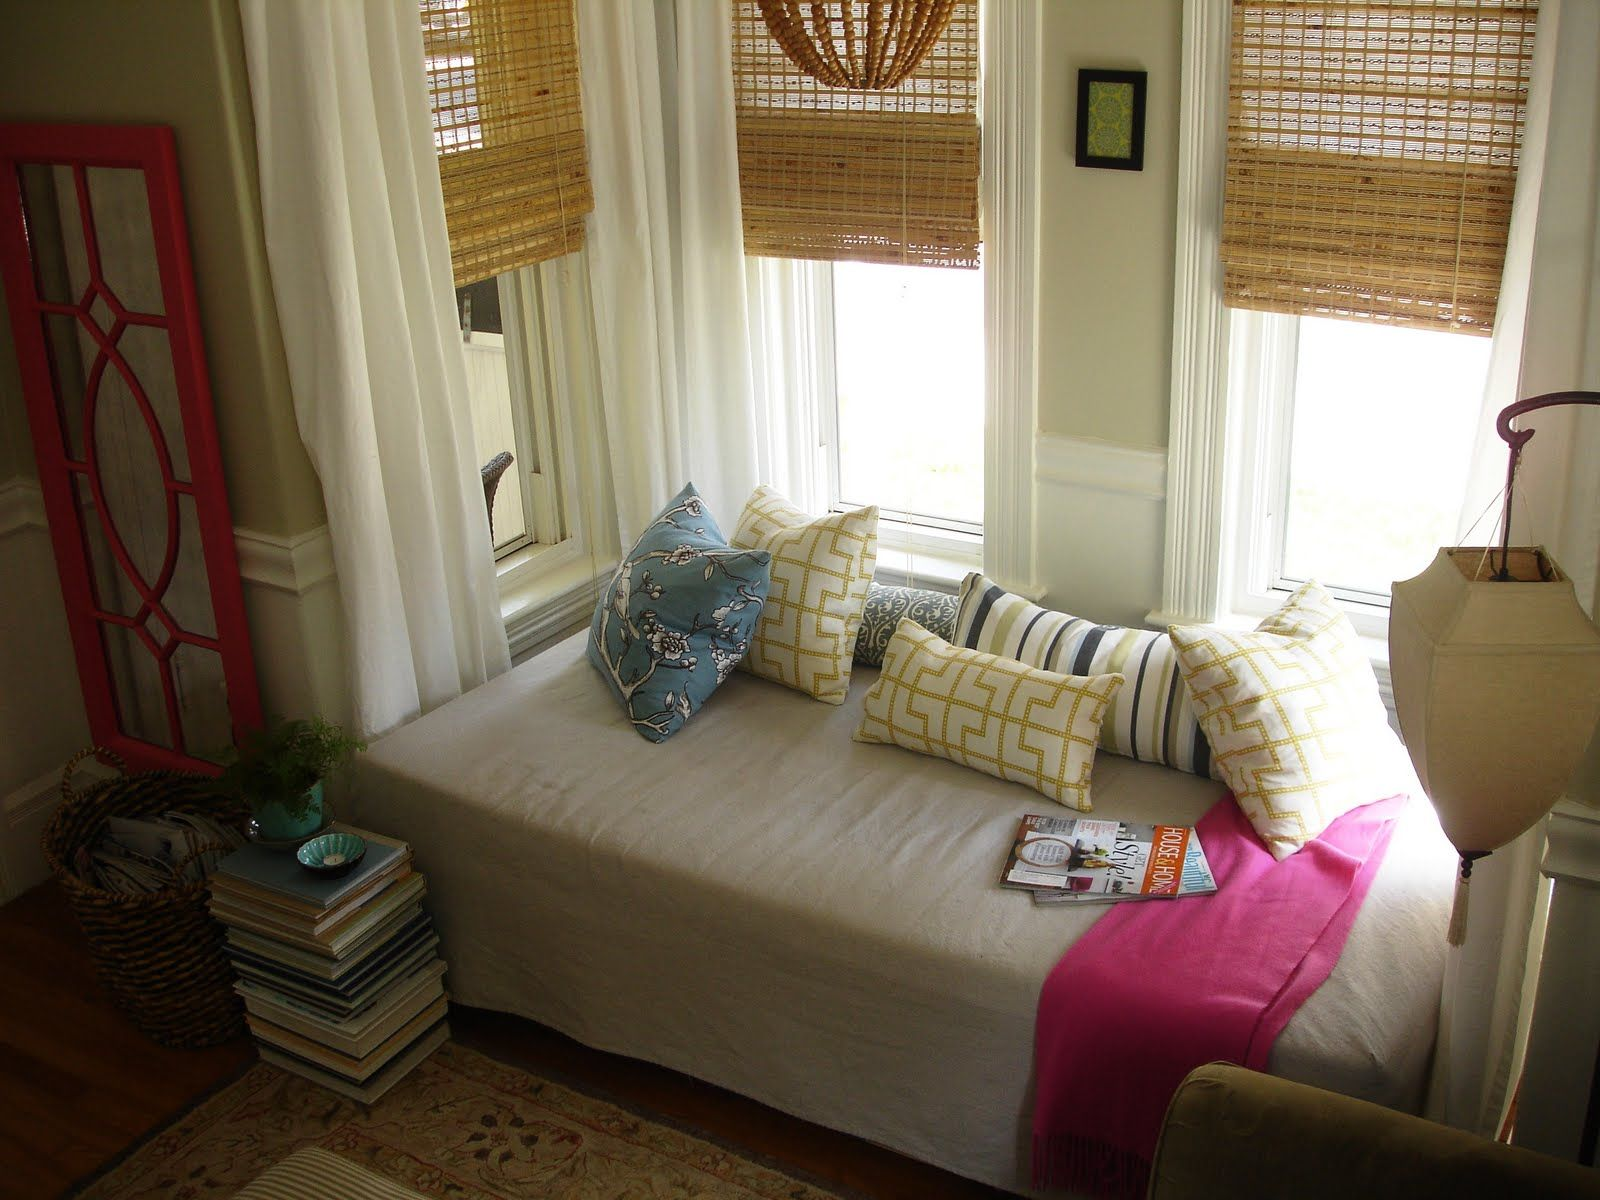 daybed window seat - Google Search